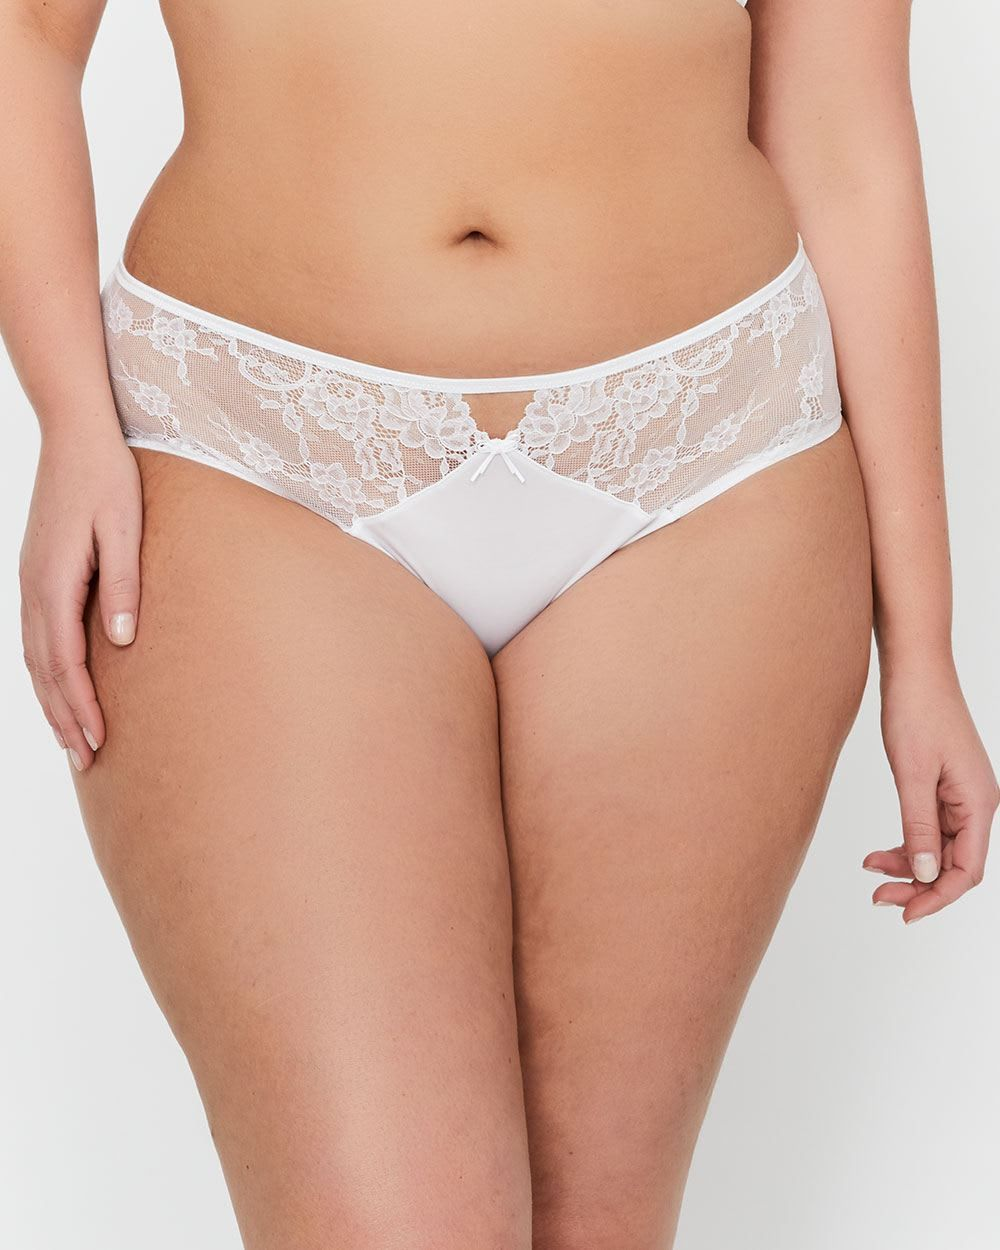 6917f0a2a  30 (Buy 2   Get 1 Free) Ashley Graham High Cut Panty with Lace   Mesh -  85% Nylon